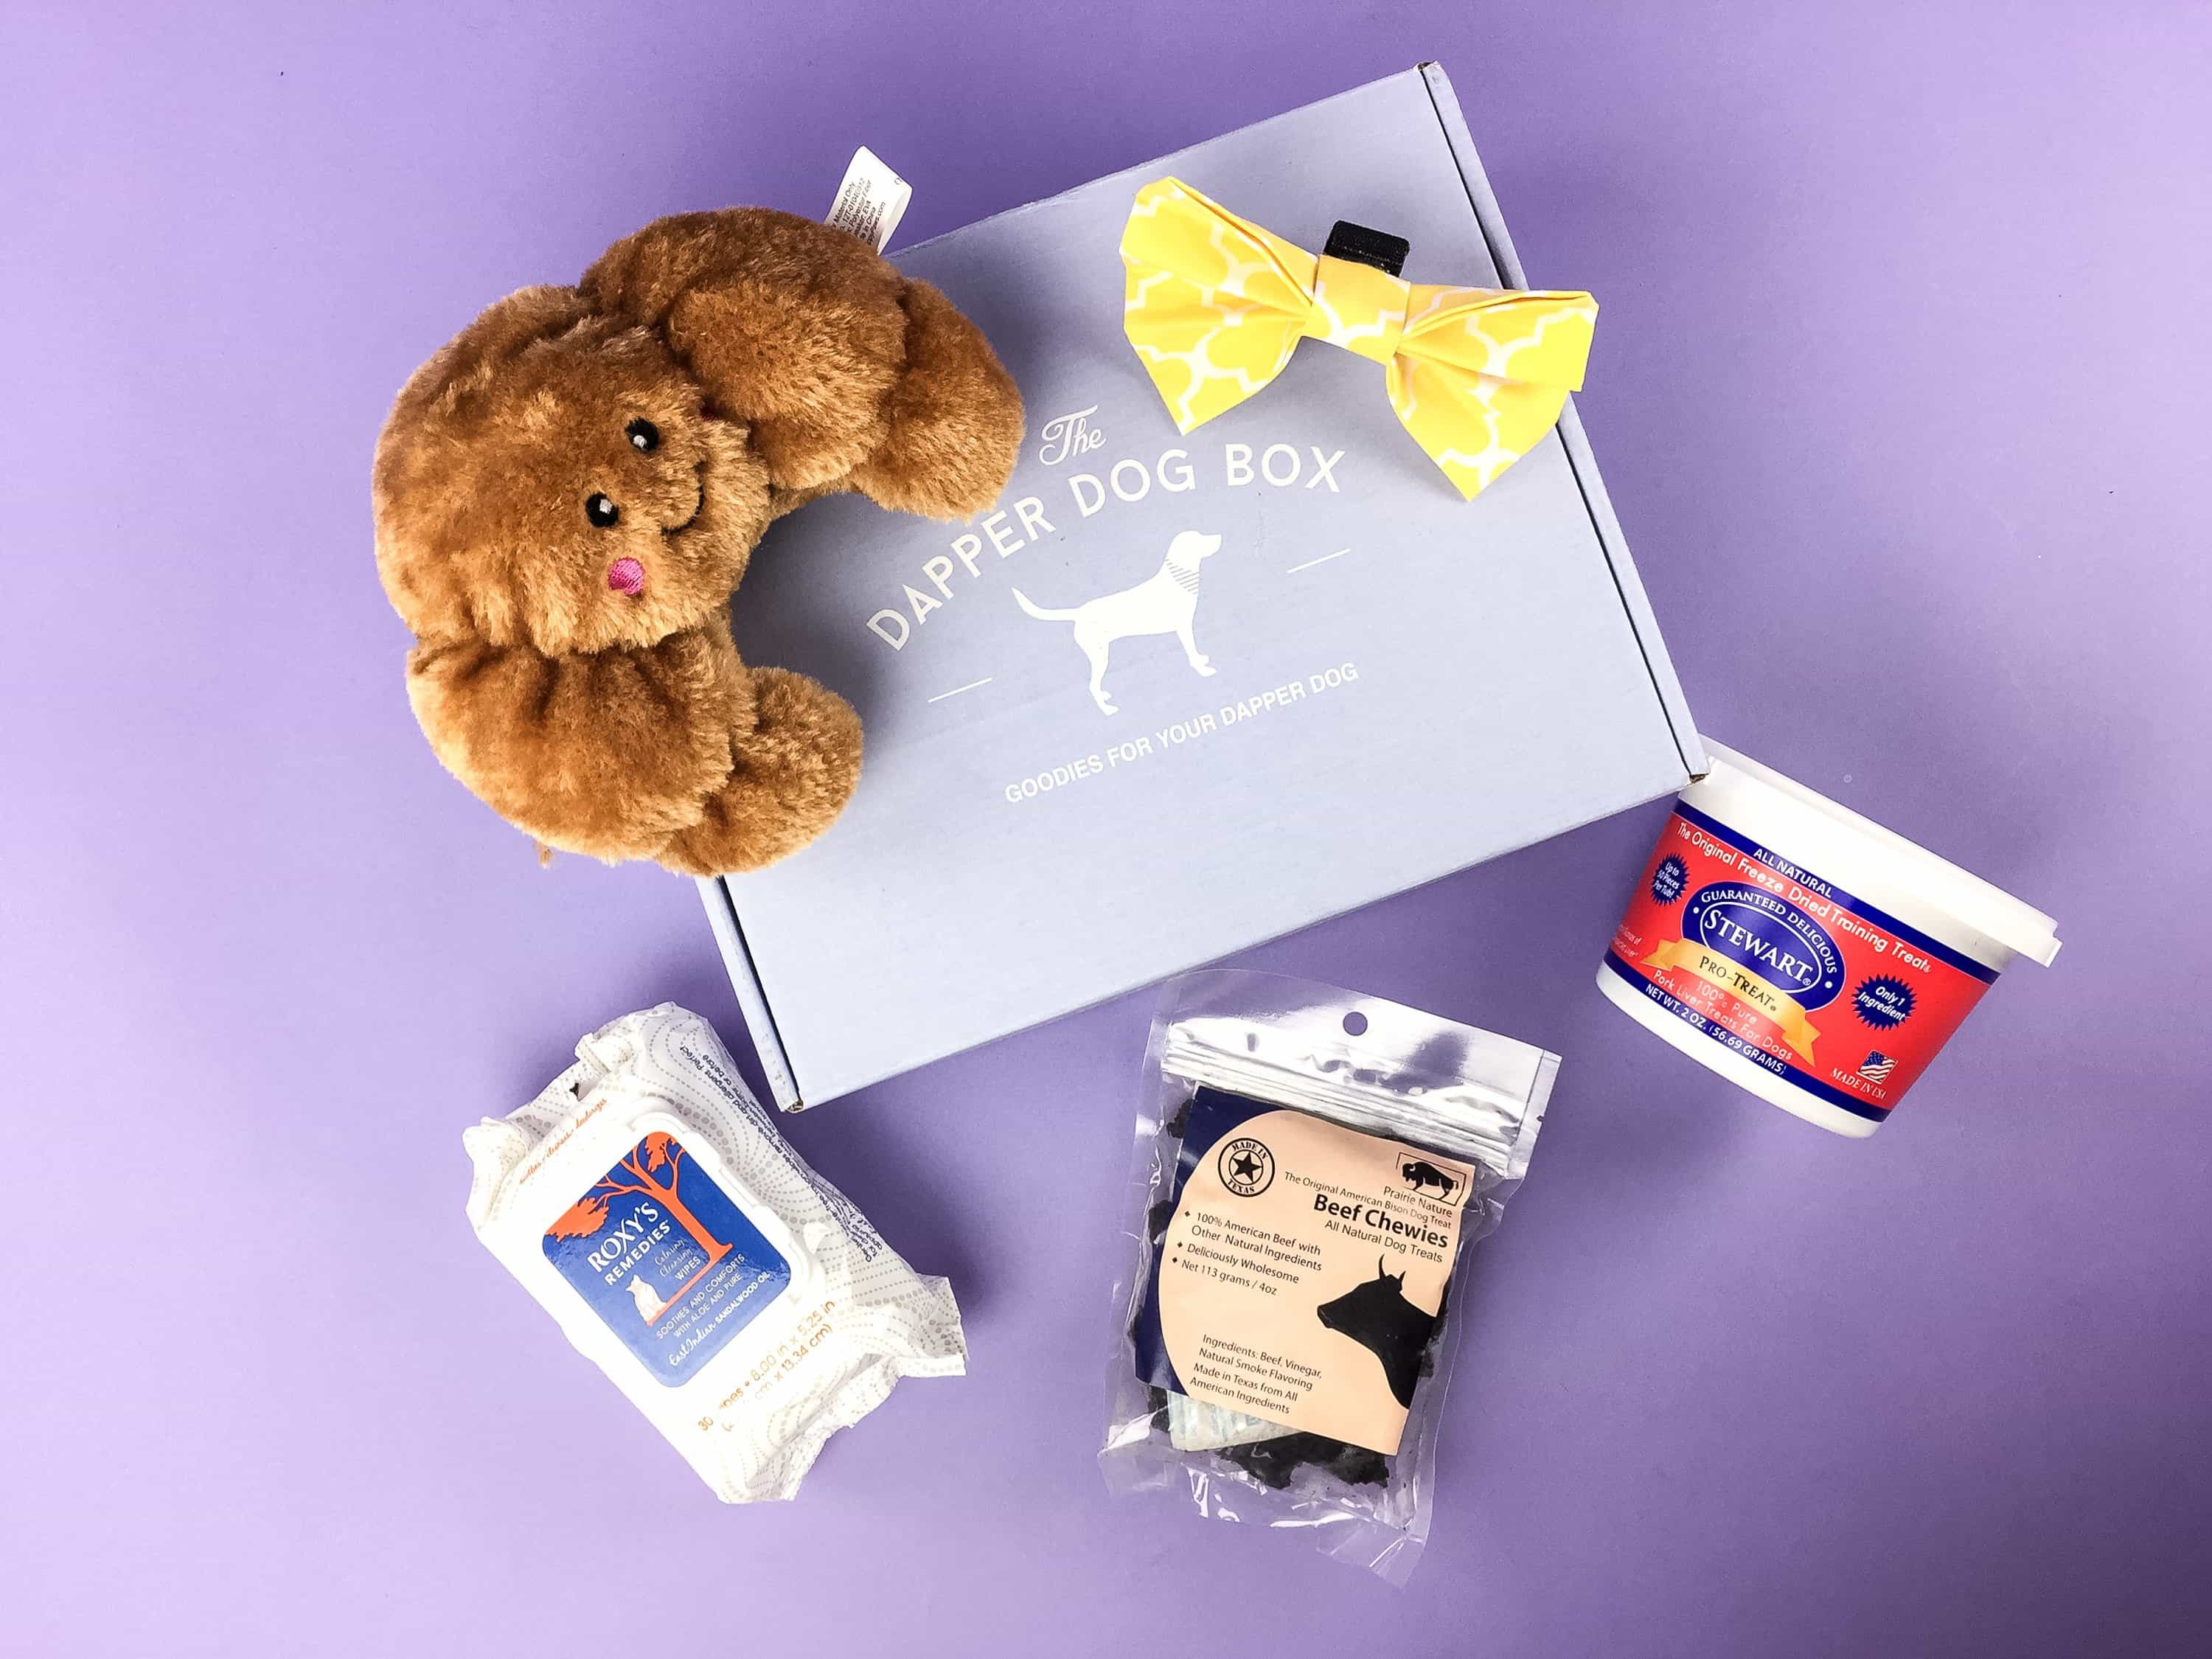 The Dapper Dog Box June 2017 Subscription Box Review + Coupon